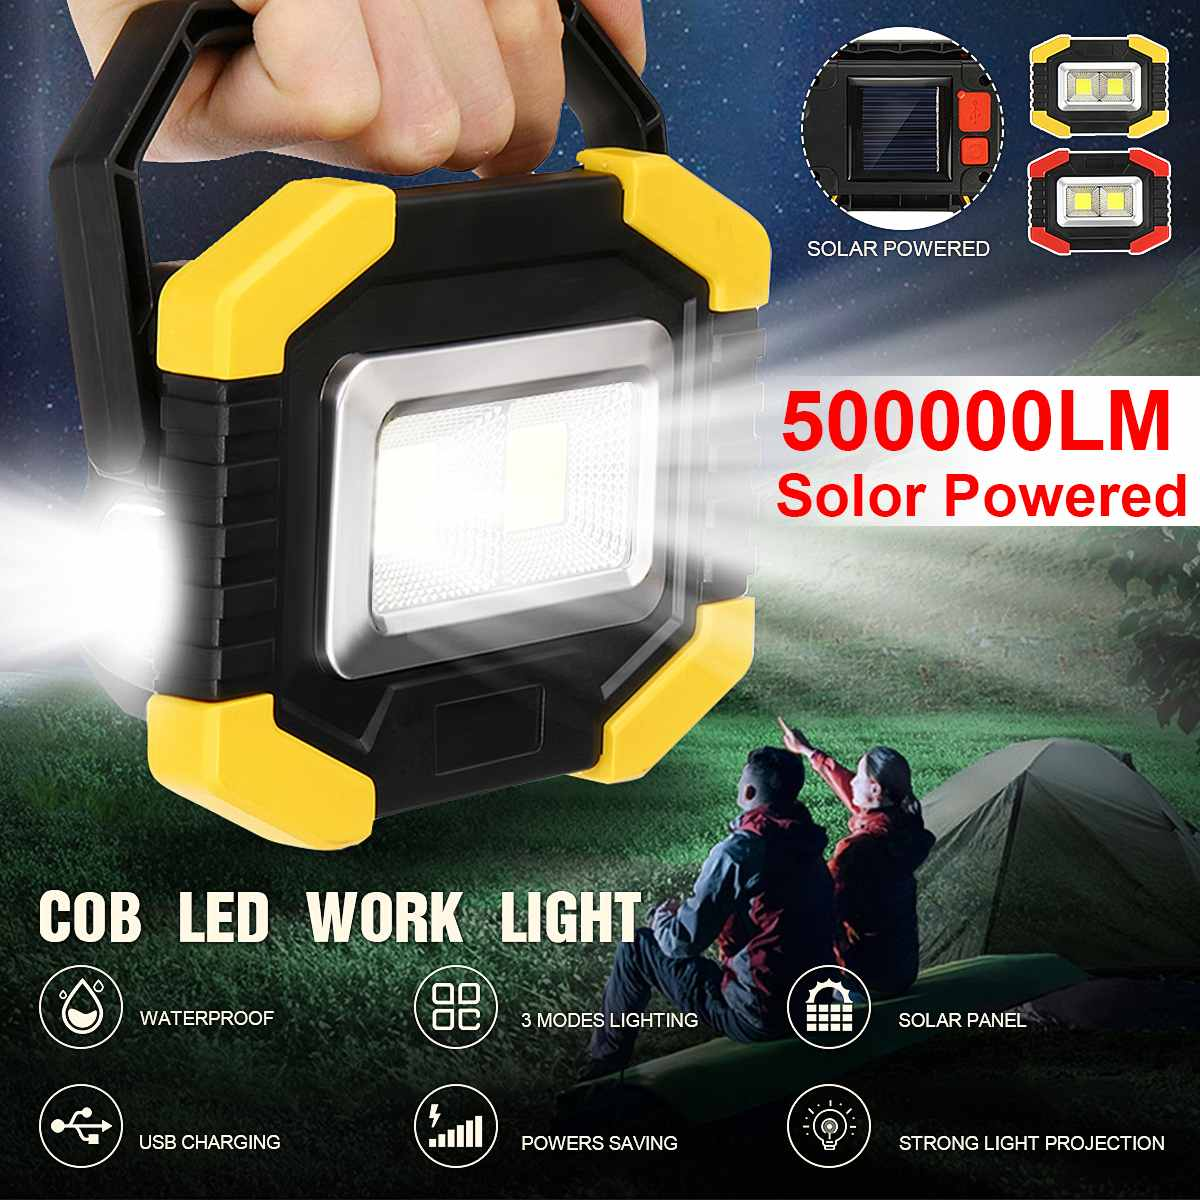 350W COB LED Floodlight Portable Spotlight 500000LM USB Charging Solar Powered/Battery Spot Work Lamp For Camping Fishing Cycle